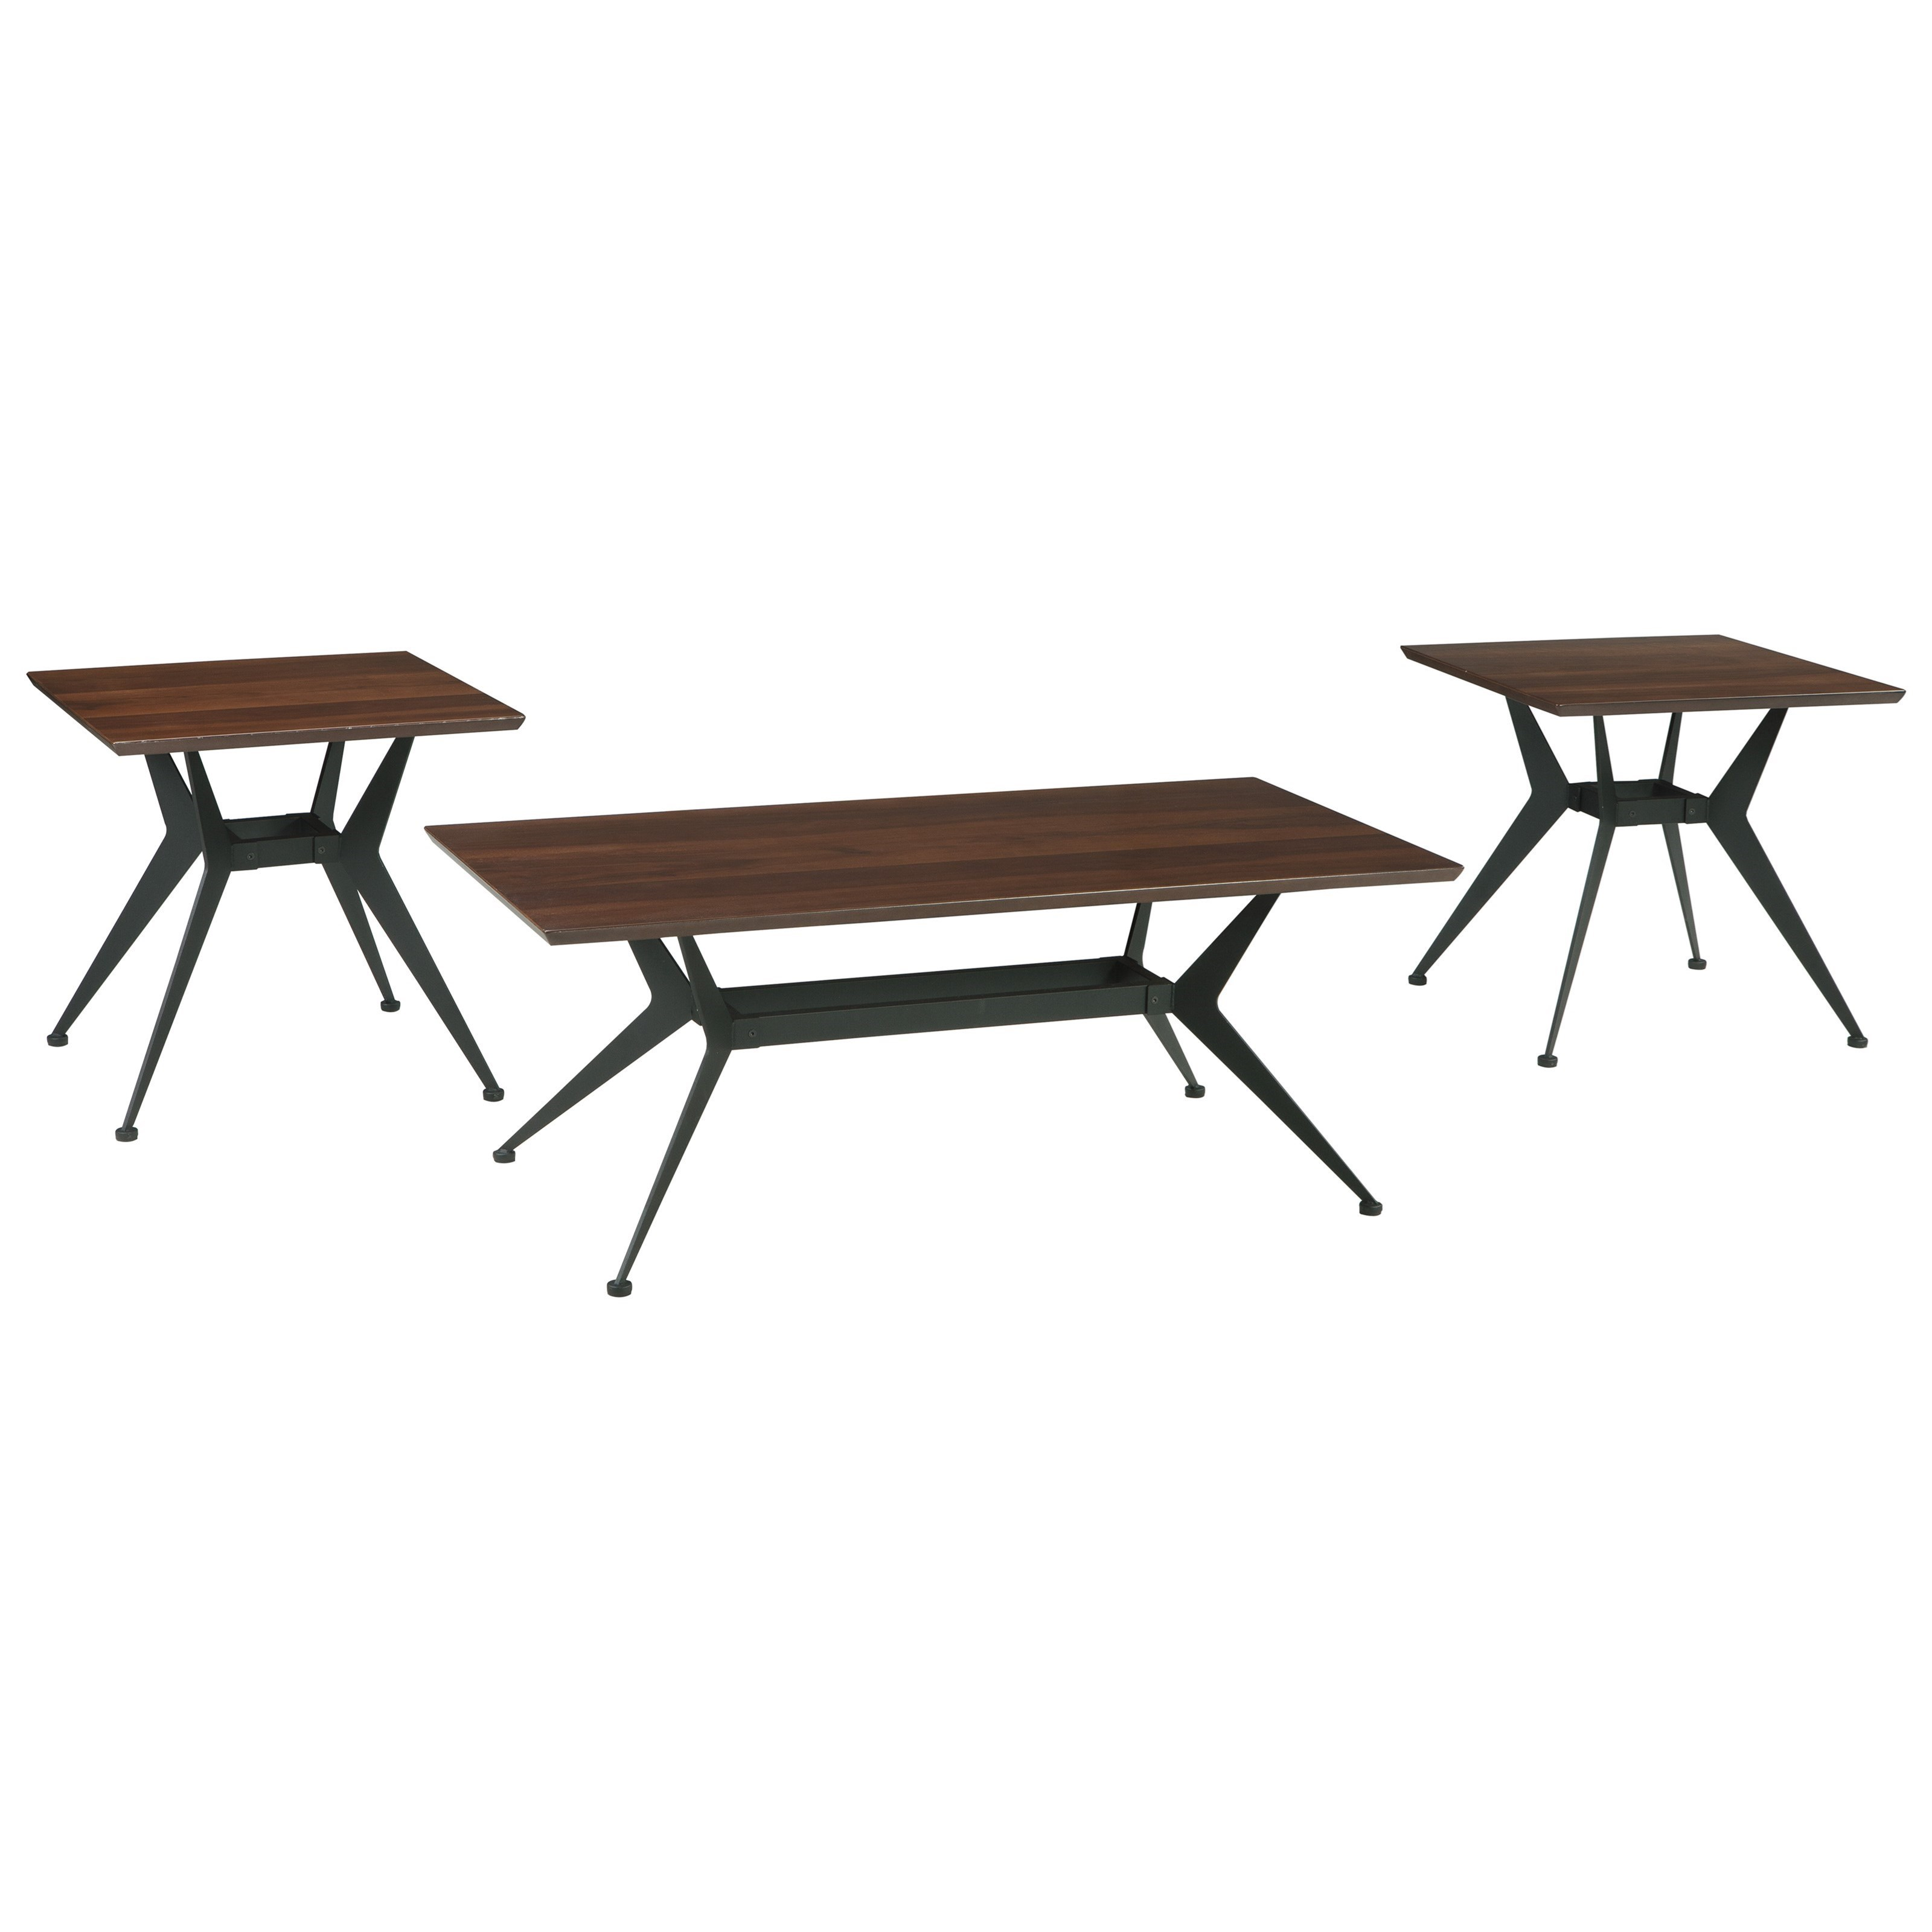 Signature Design by Ashley Liamburg 3 Piece Occasional Table Set - Item Number: T386-13